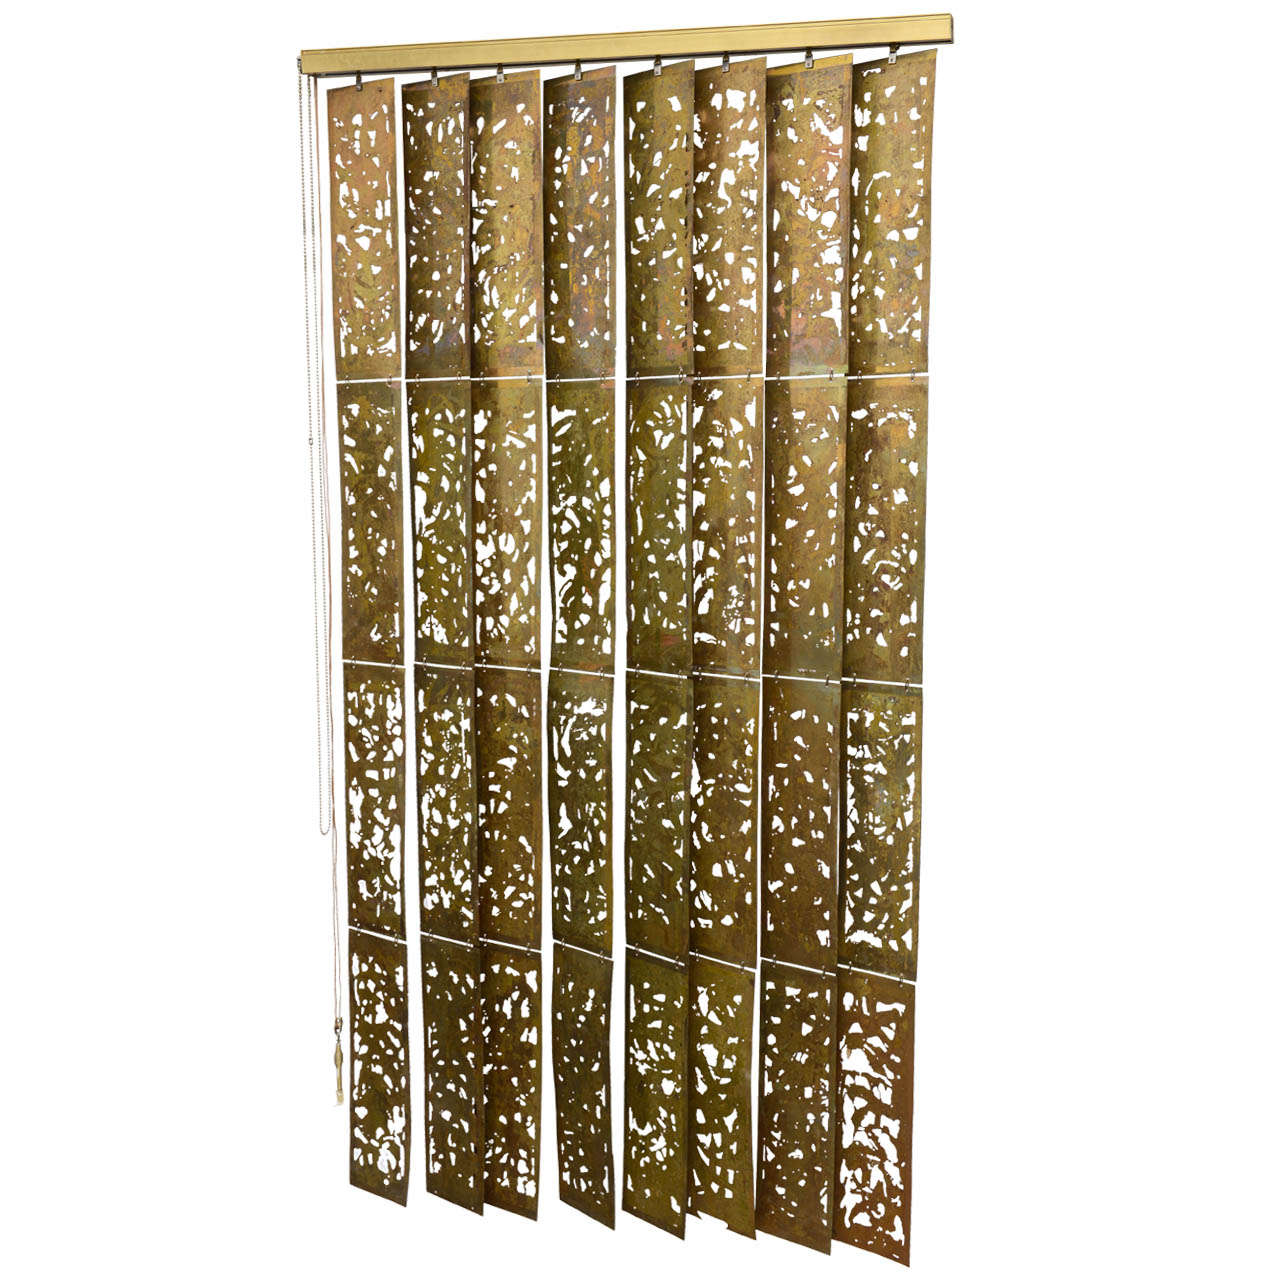 Brass Metal Acid Etched Curtains Blinds At 1stdibs